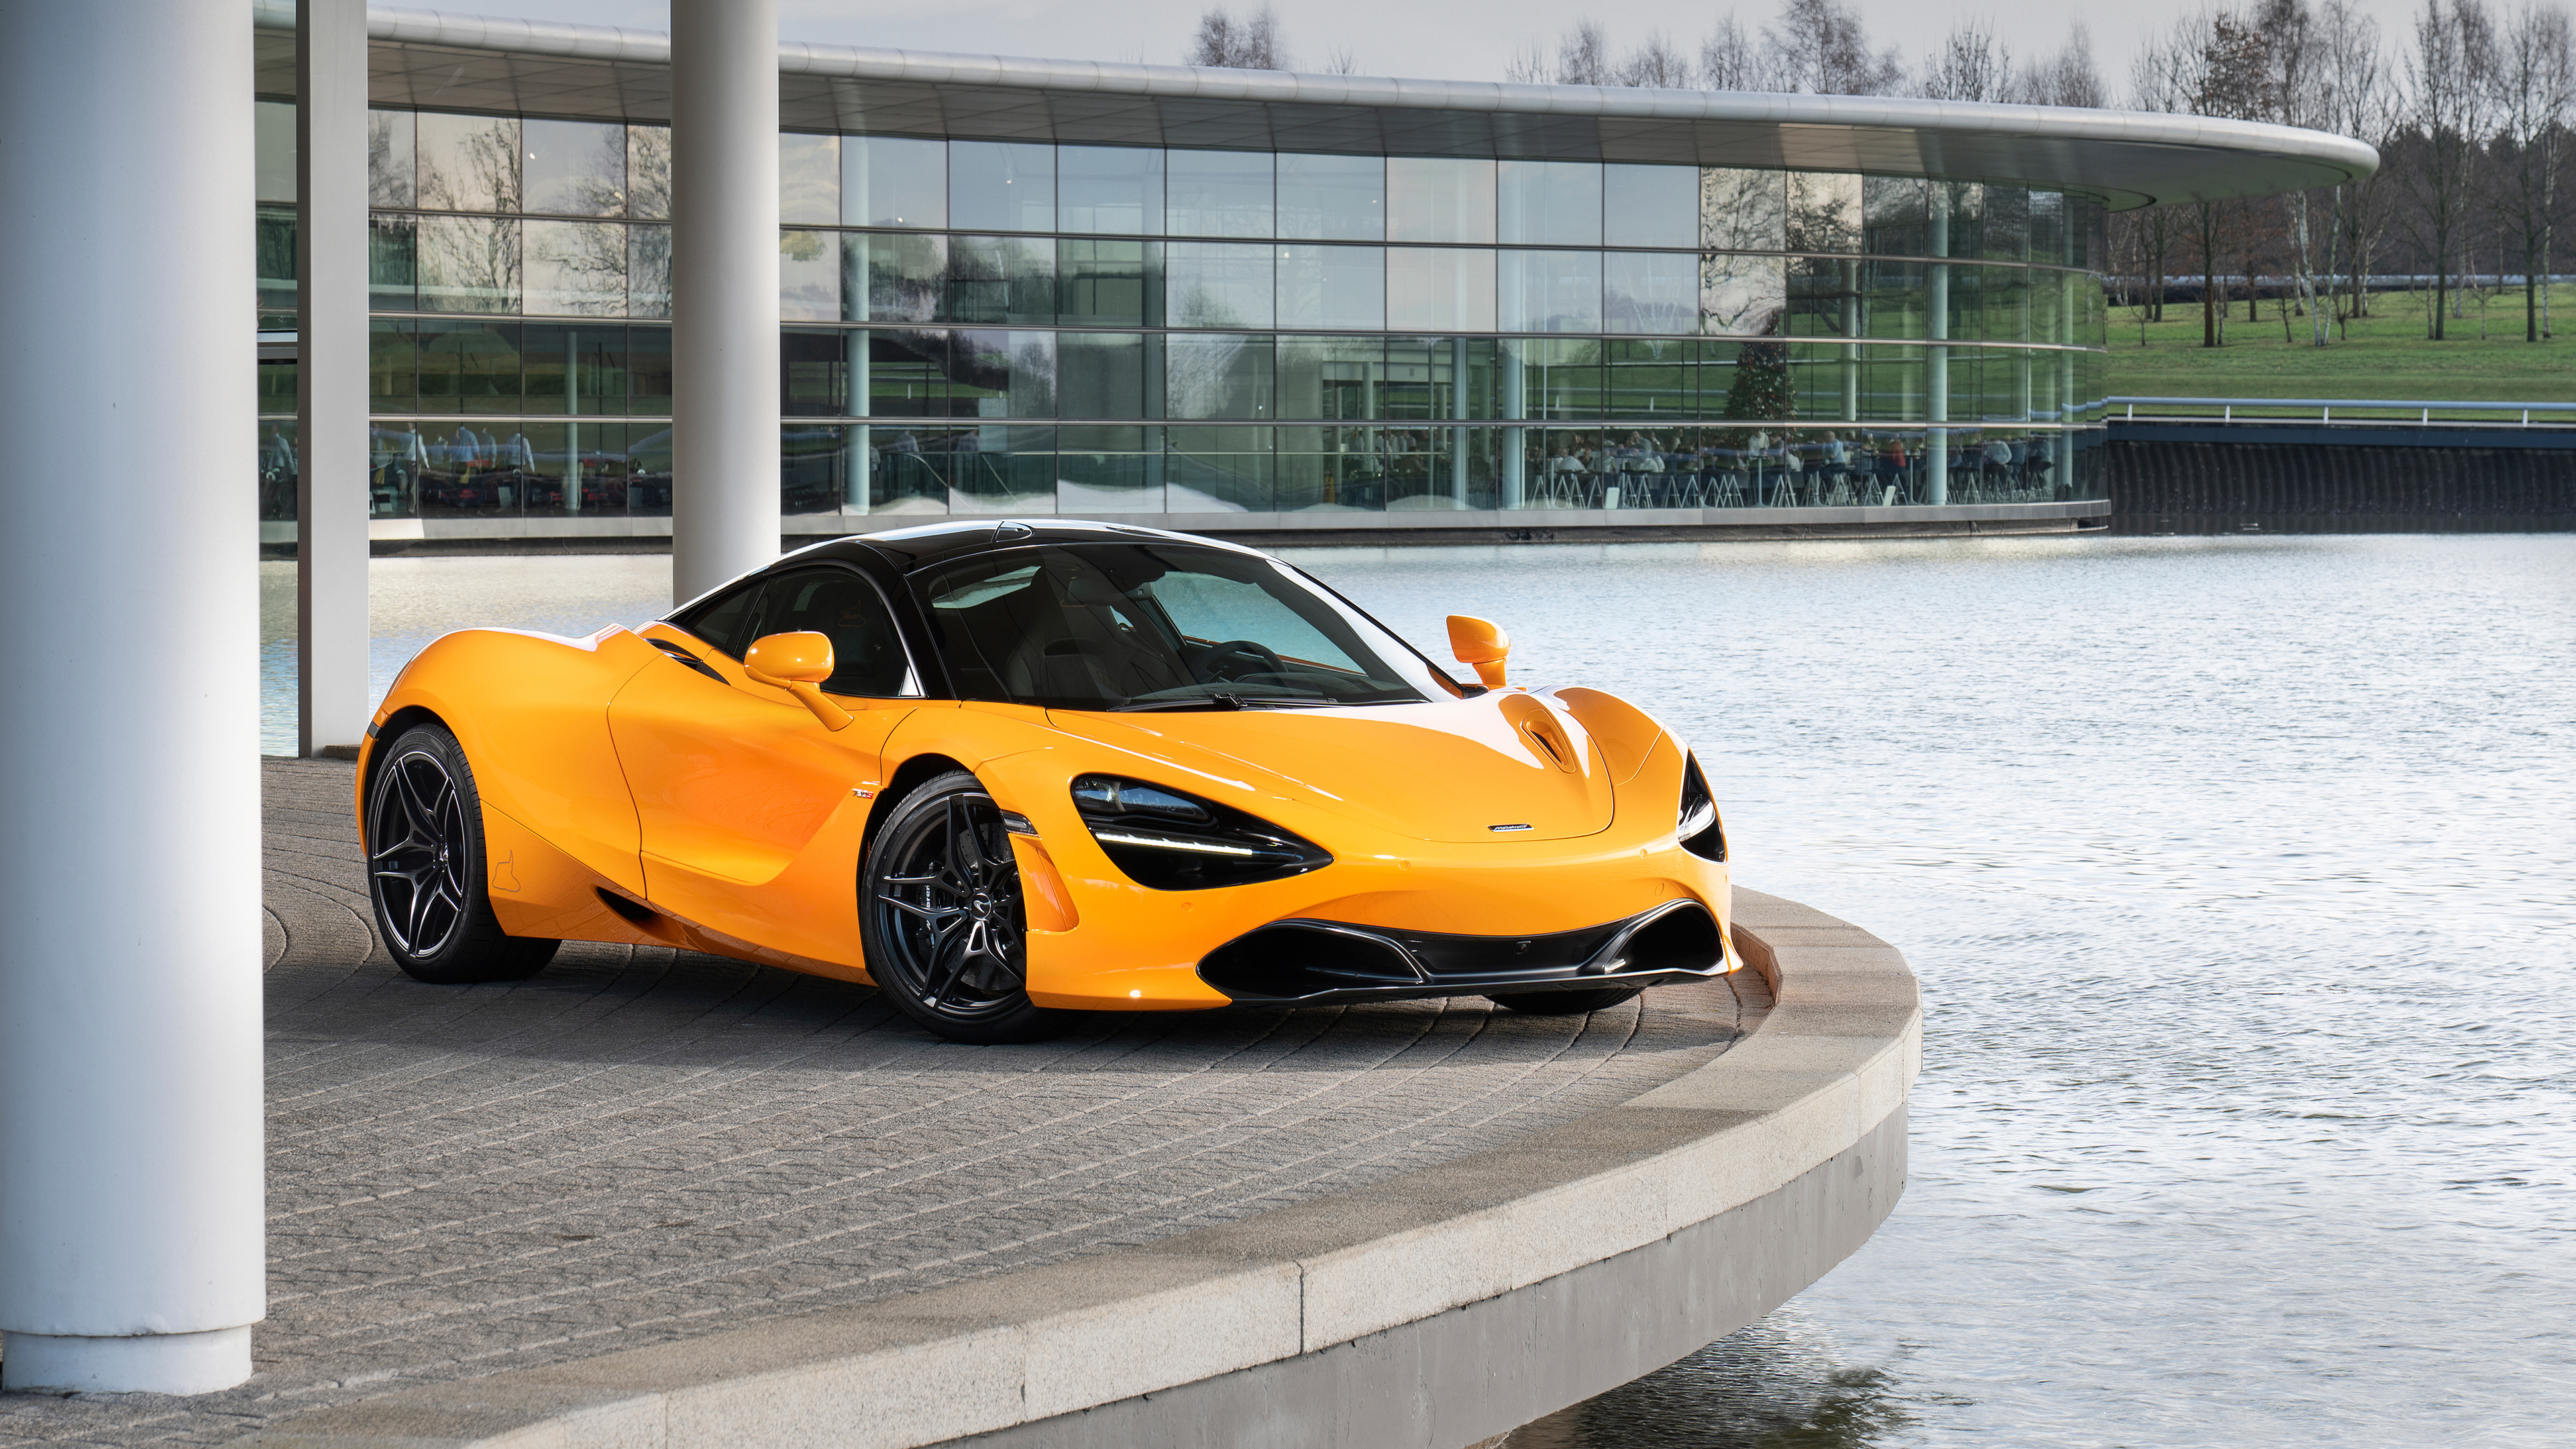 mclaren mso 720s spa 68 2019 4k 1547936823 - McLaren MSO 720S Spa 68 2019 4k - mclaren wallpapers, mclaren 720s wallpapers, hd-wallpapers, cars wallpapers, 4k-wallpapers, 2019 cars wallpapers